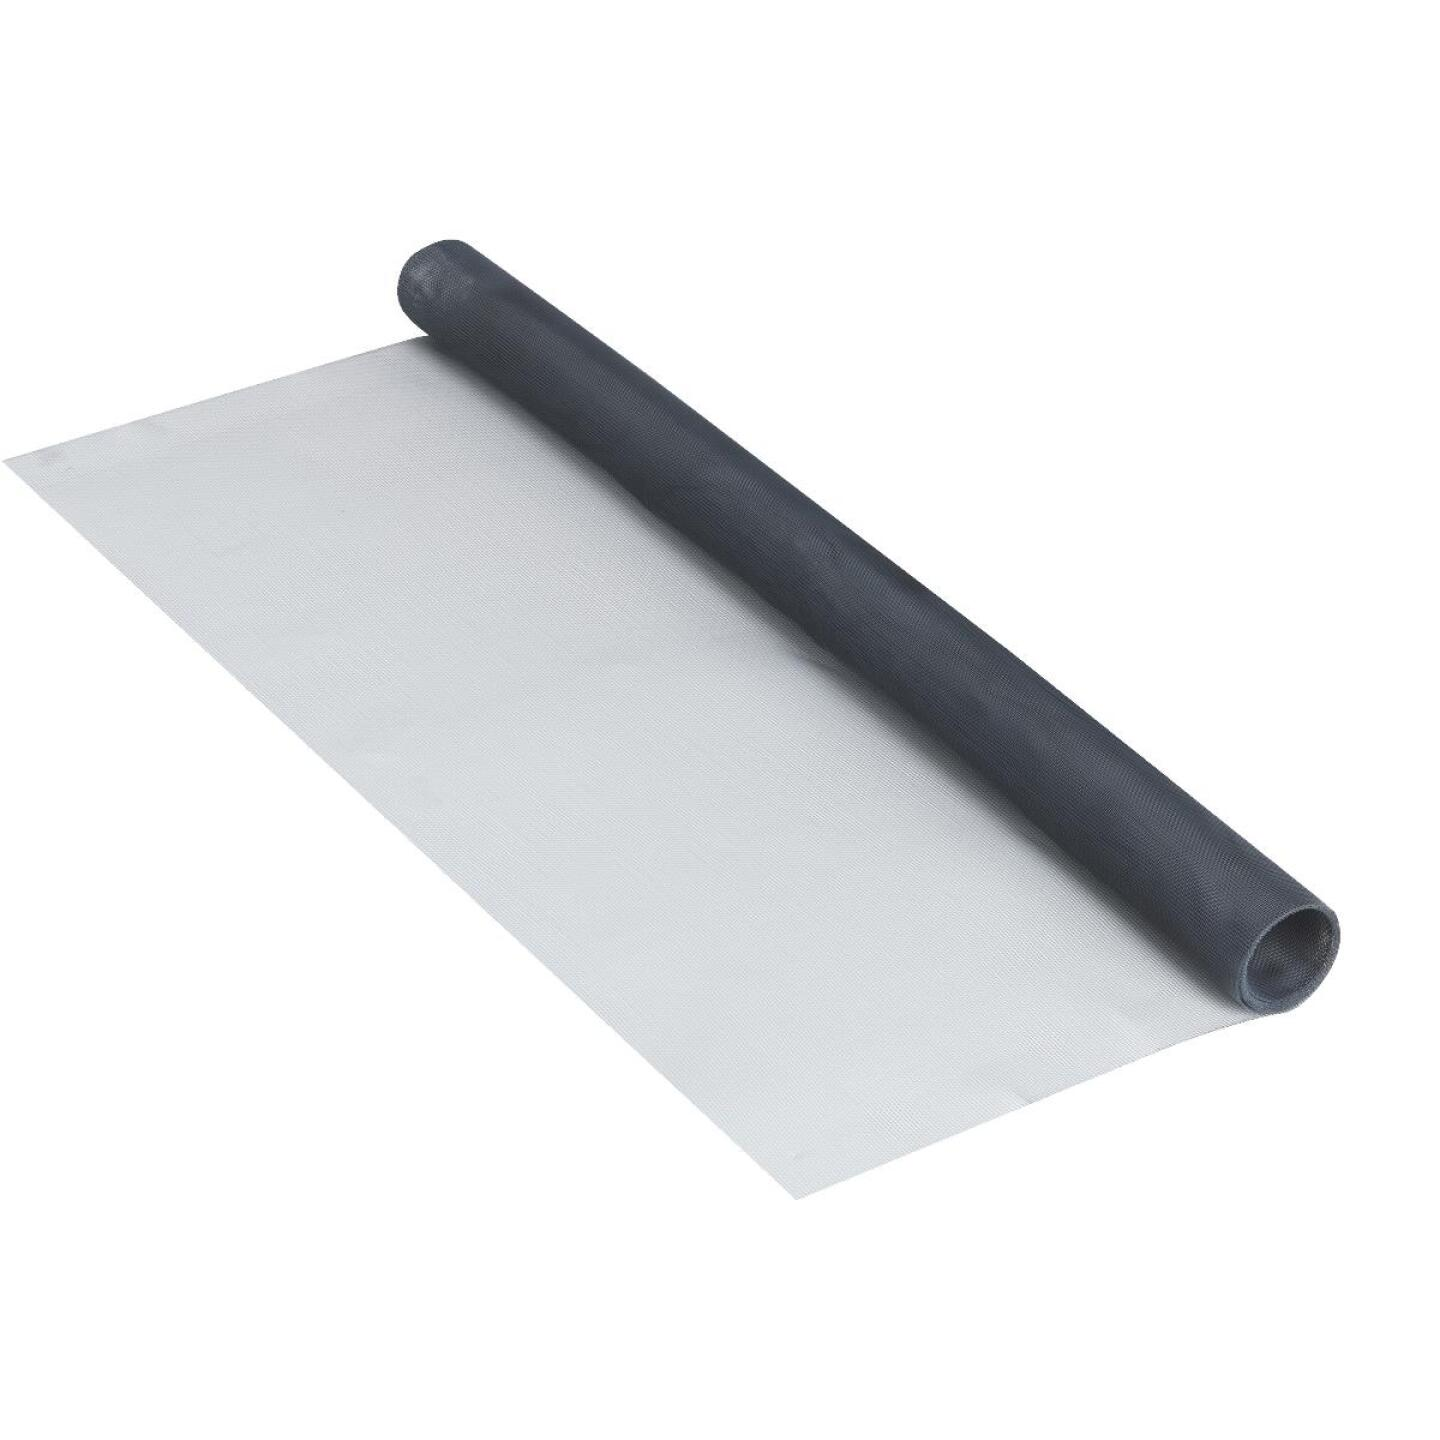 Phifer 30 In. x 84 In. Charcoal Aluminum Screen Ready Rolls Image 2